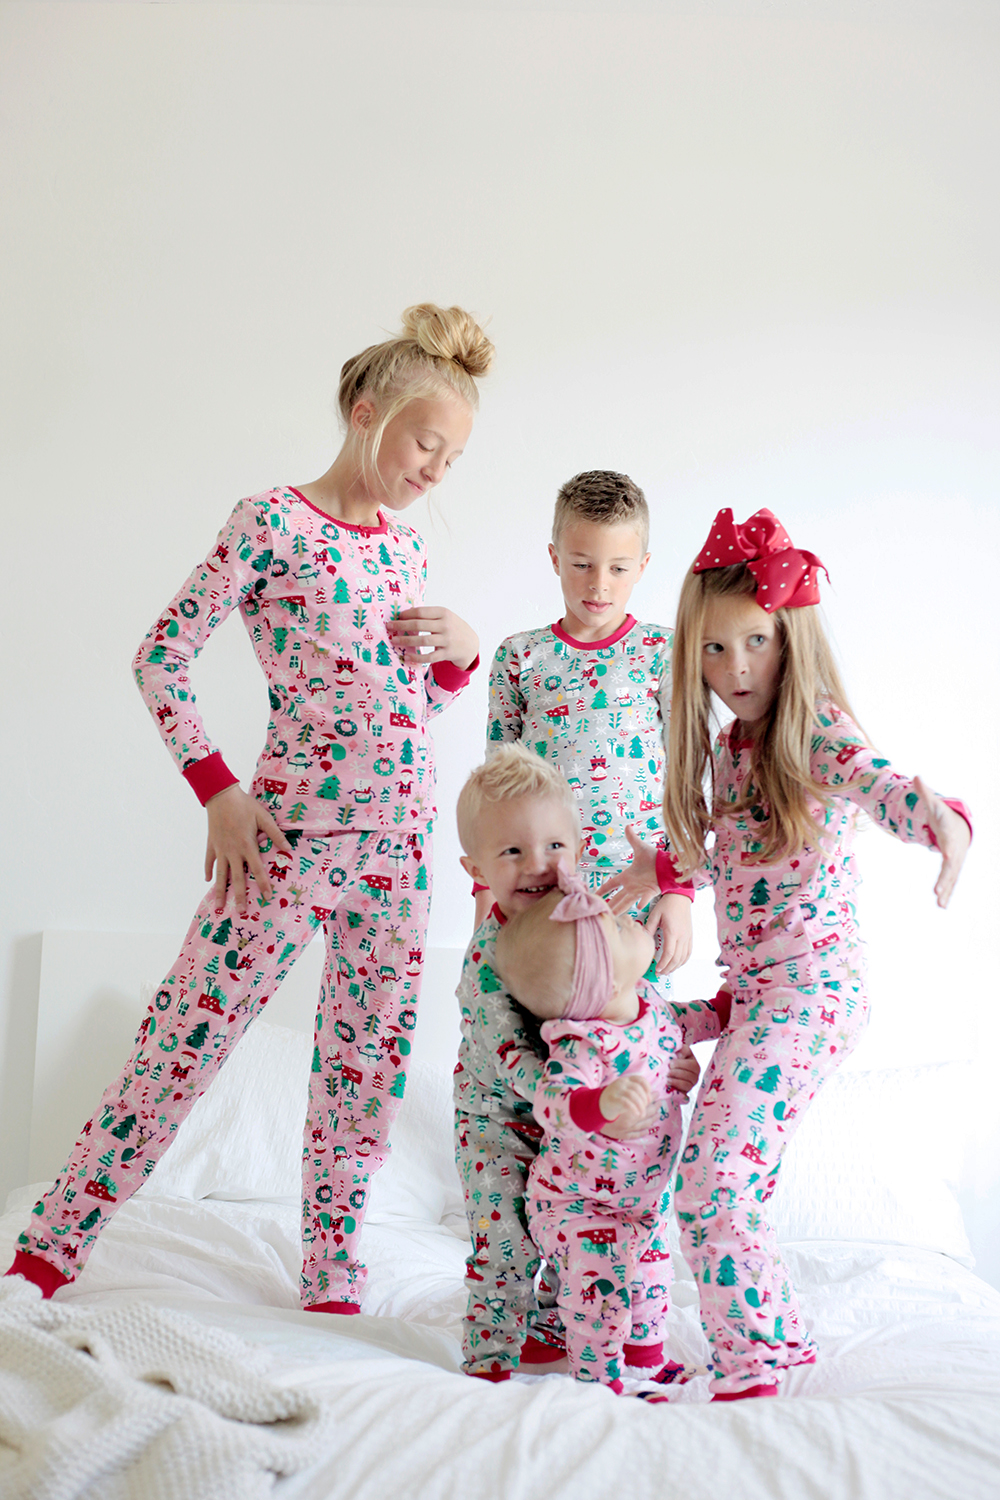 f08d989e0234 Our favorite holiday family traditions kailee wright jpg 1000x1500 Home  depot pajamas